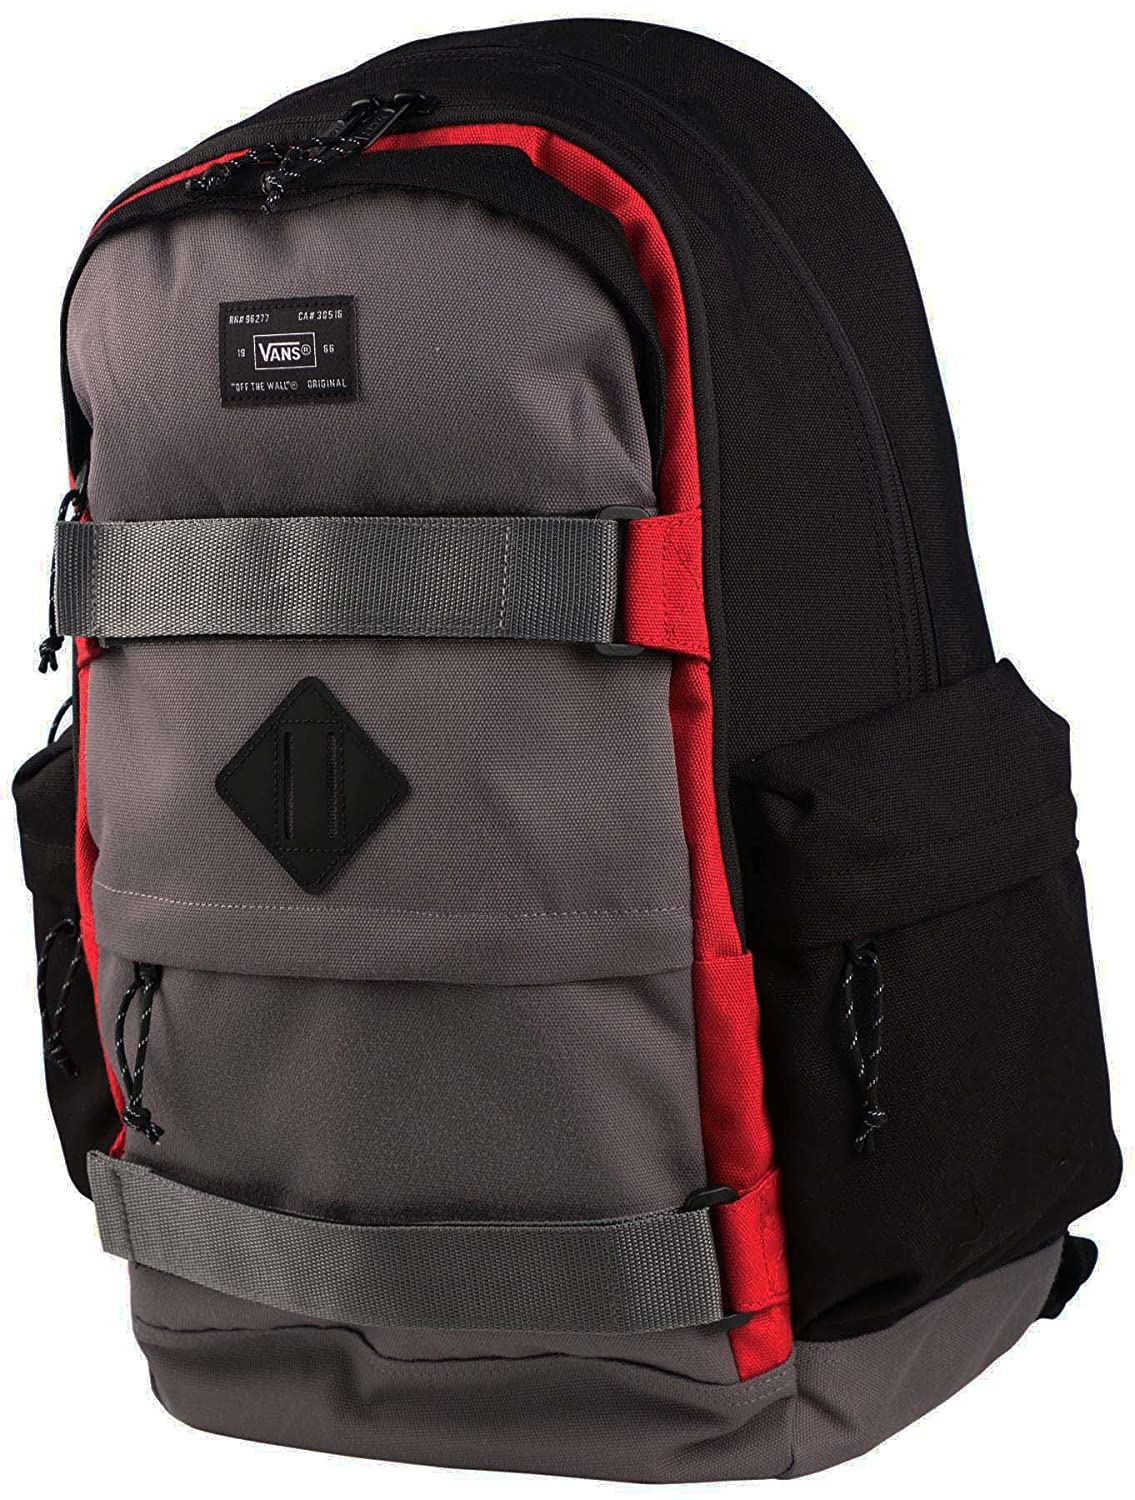 c48ec6b06a Amazon.com  Vans Off The Wall Jetter Carry All Skate Backpack-Pewter Black Red   Sports   Outdoors